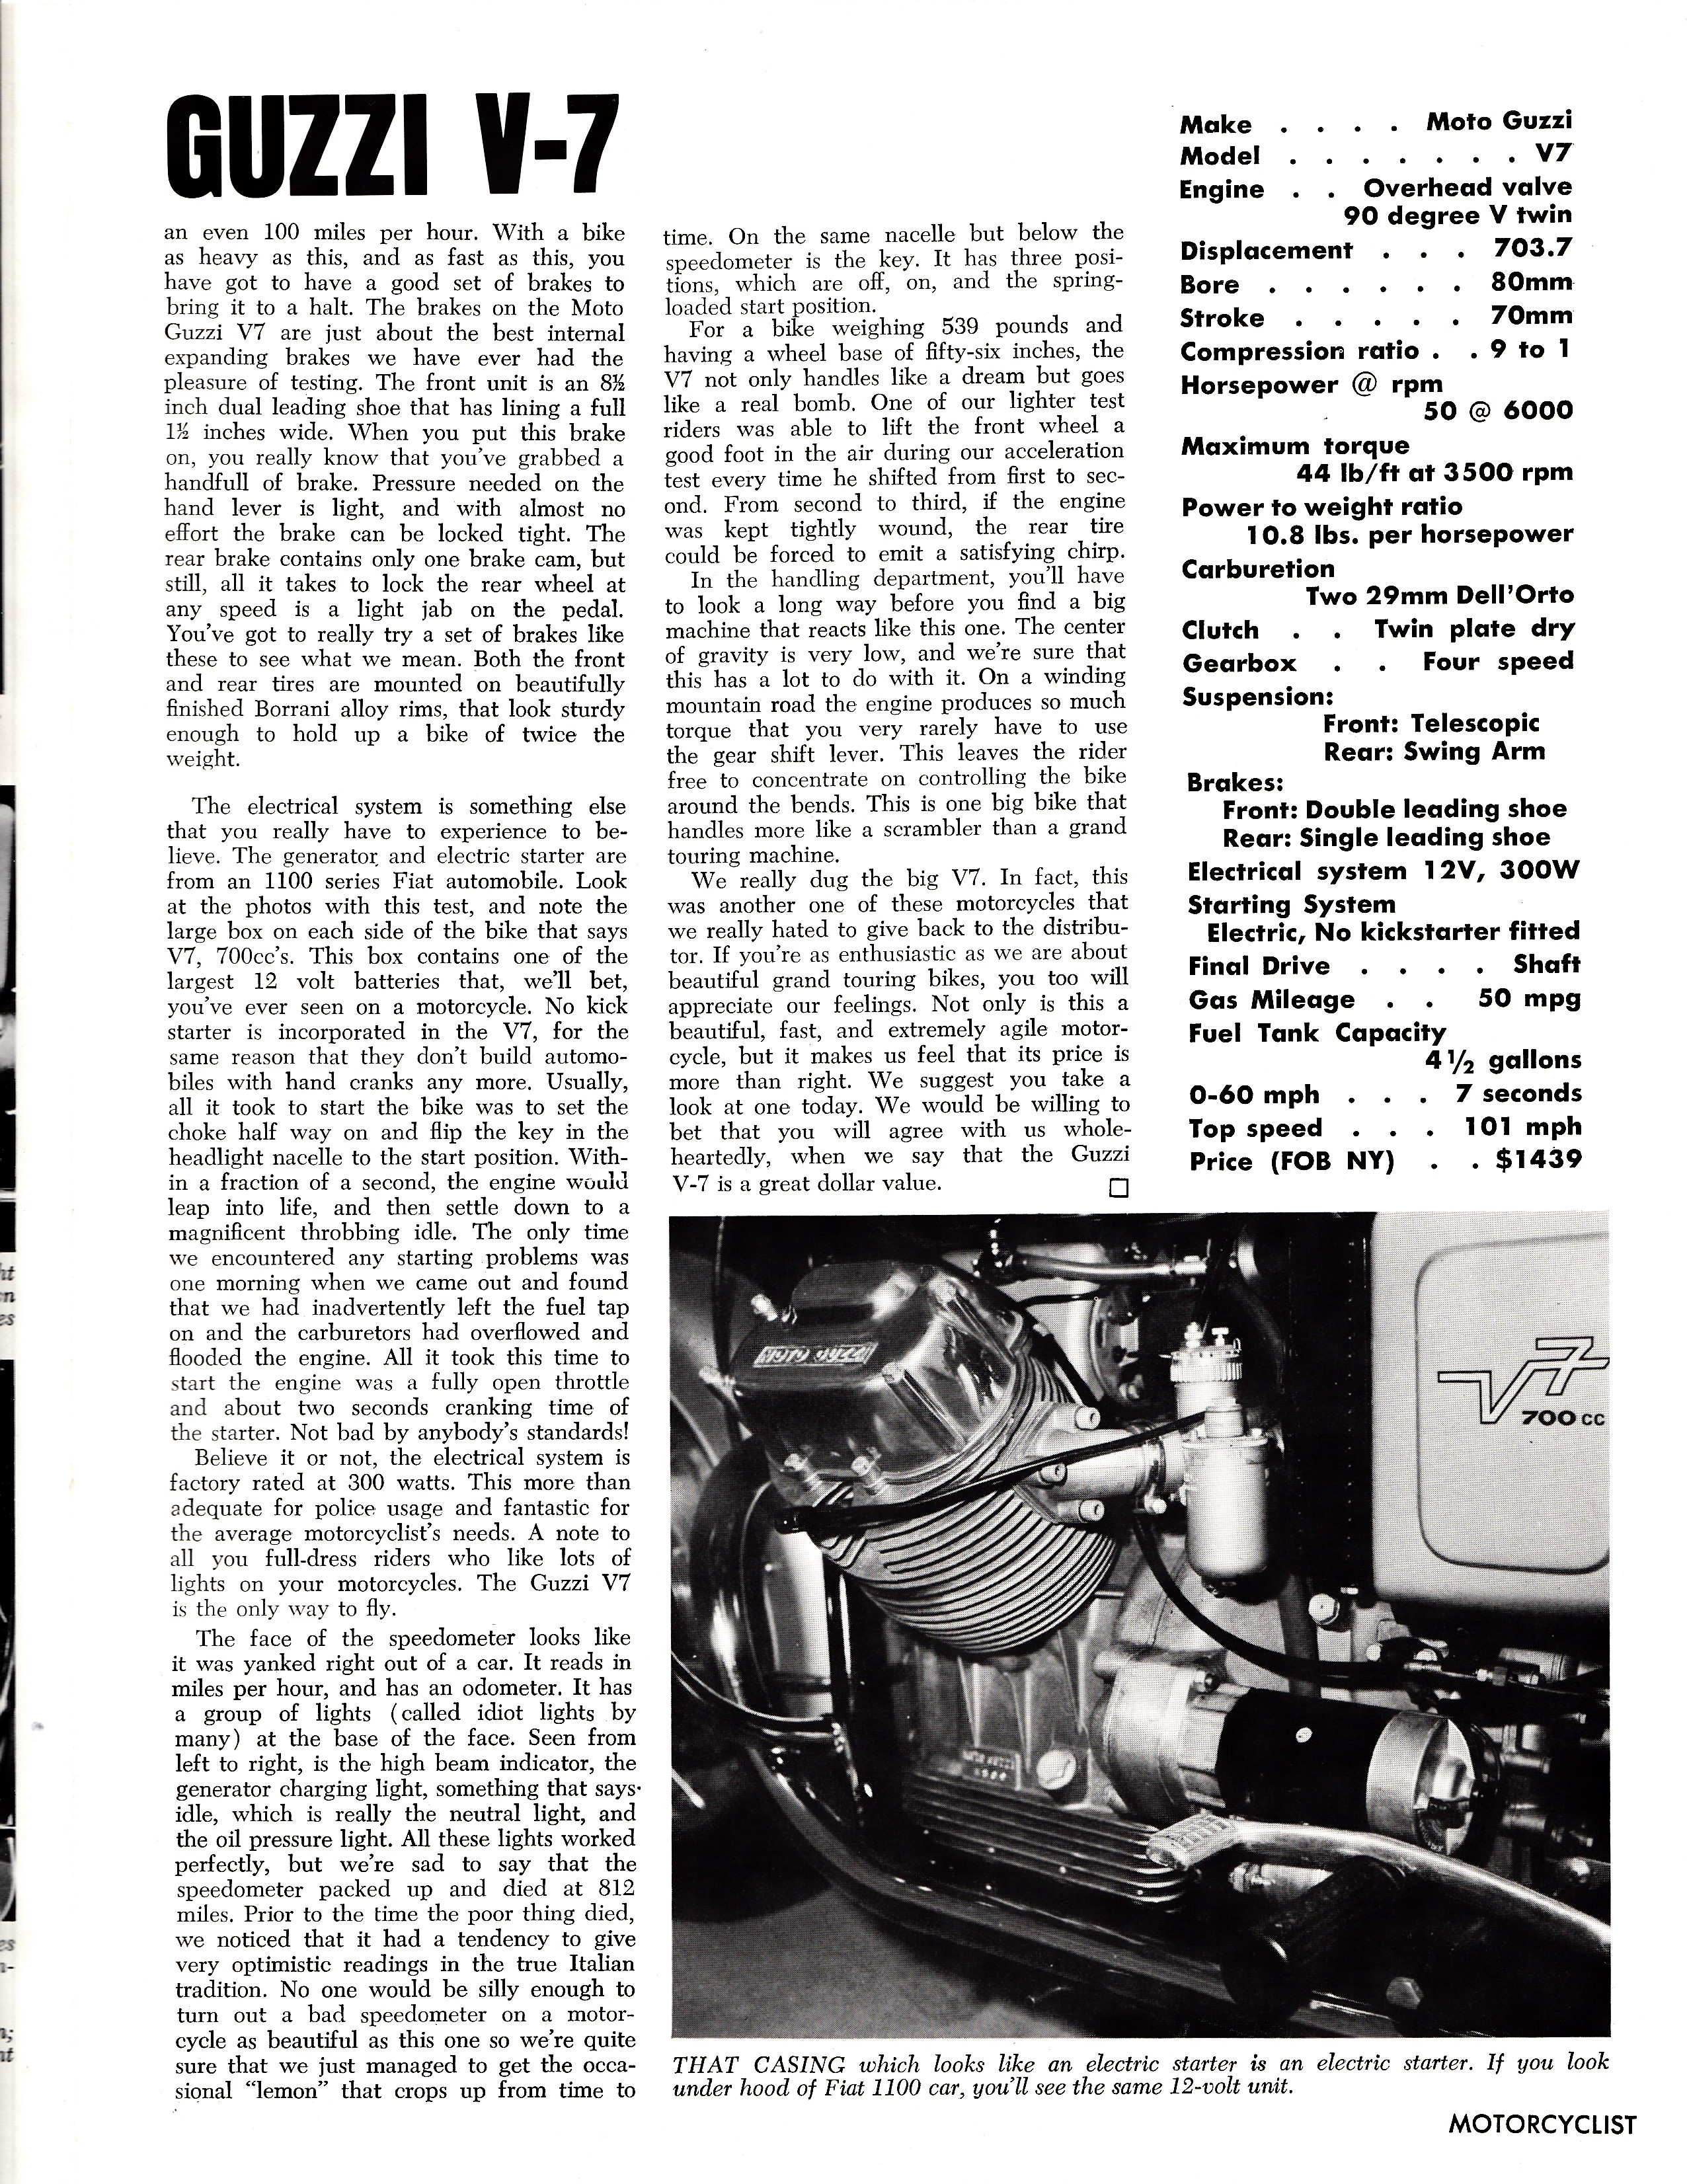 Moto Guzzi V700 factory brochure of magazine reviews, Page 7 of 8.